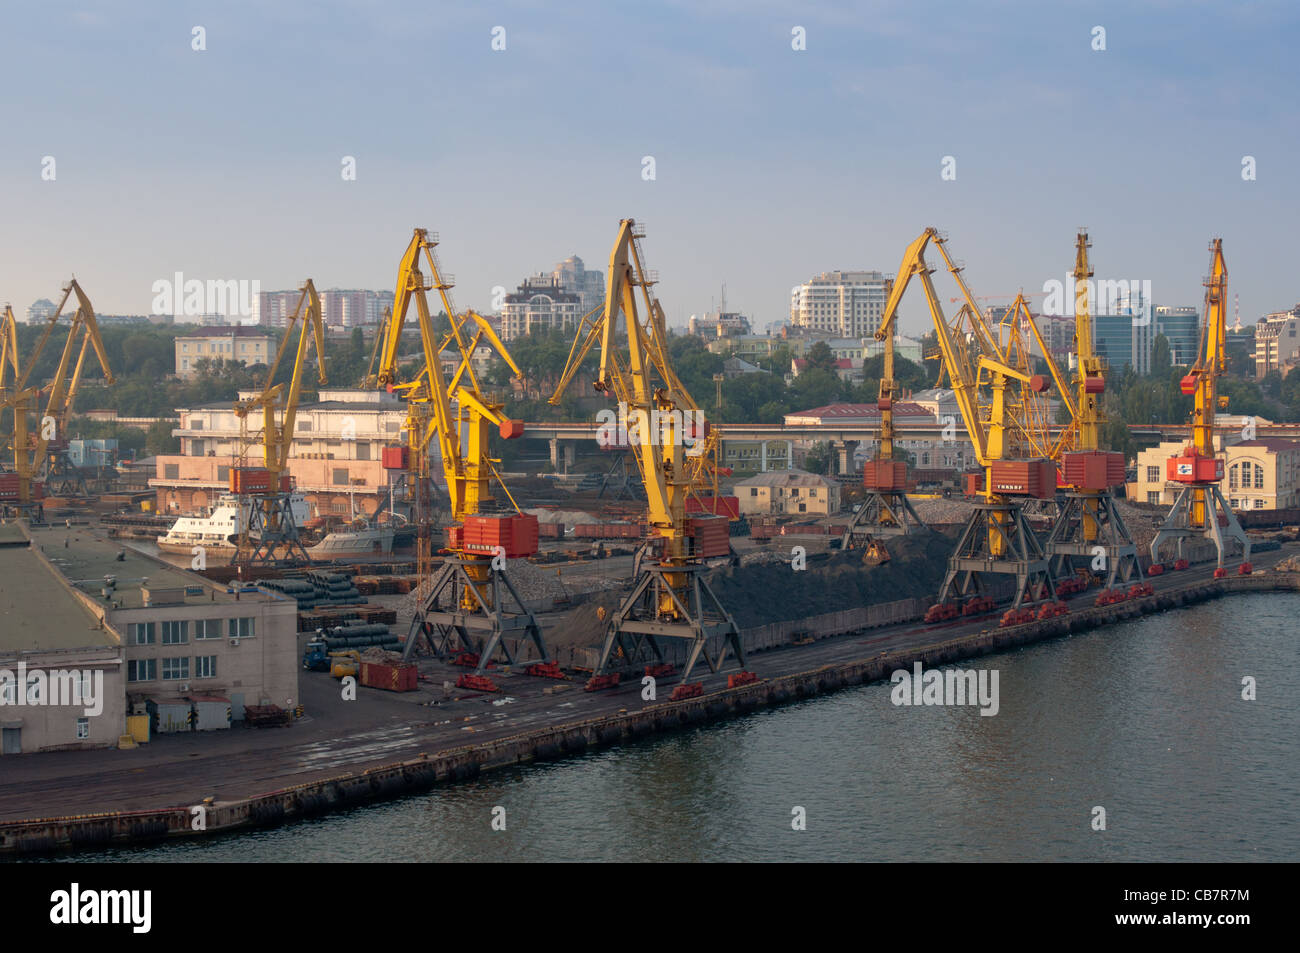 Heavy industry at Odessa's port. Ukraine. - Stock Image